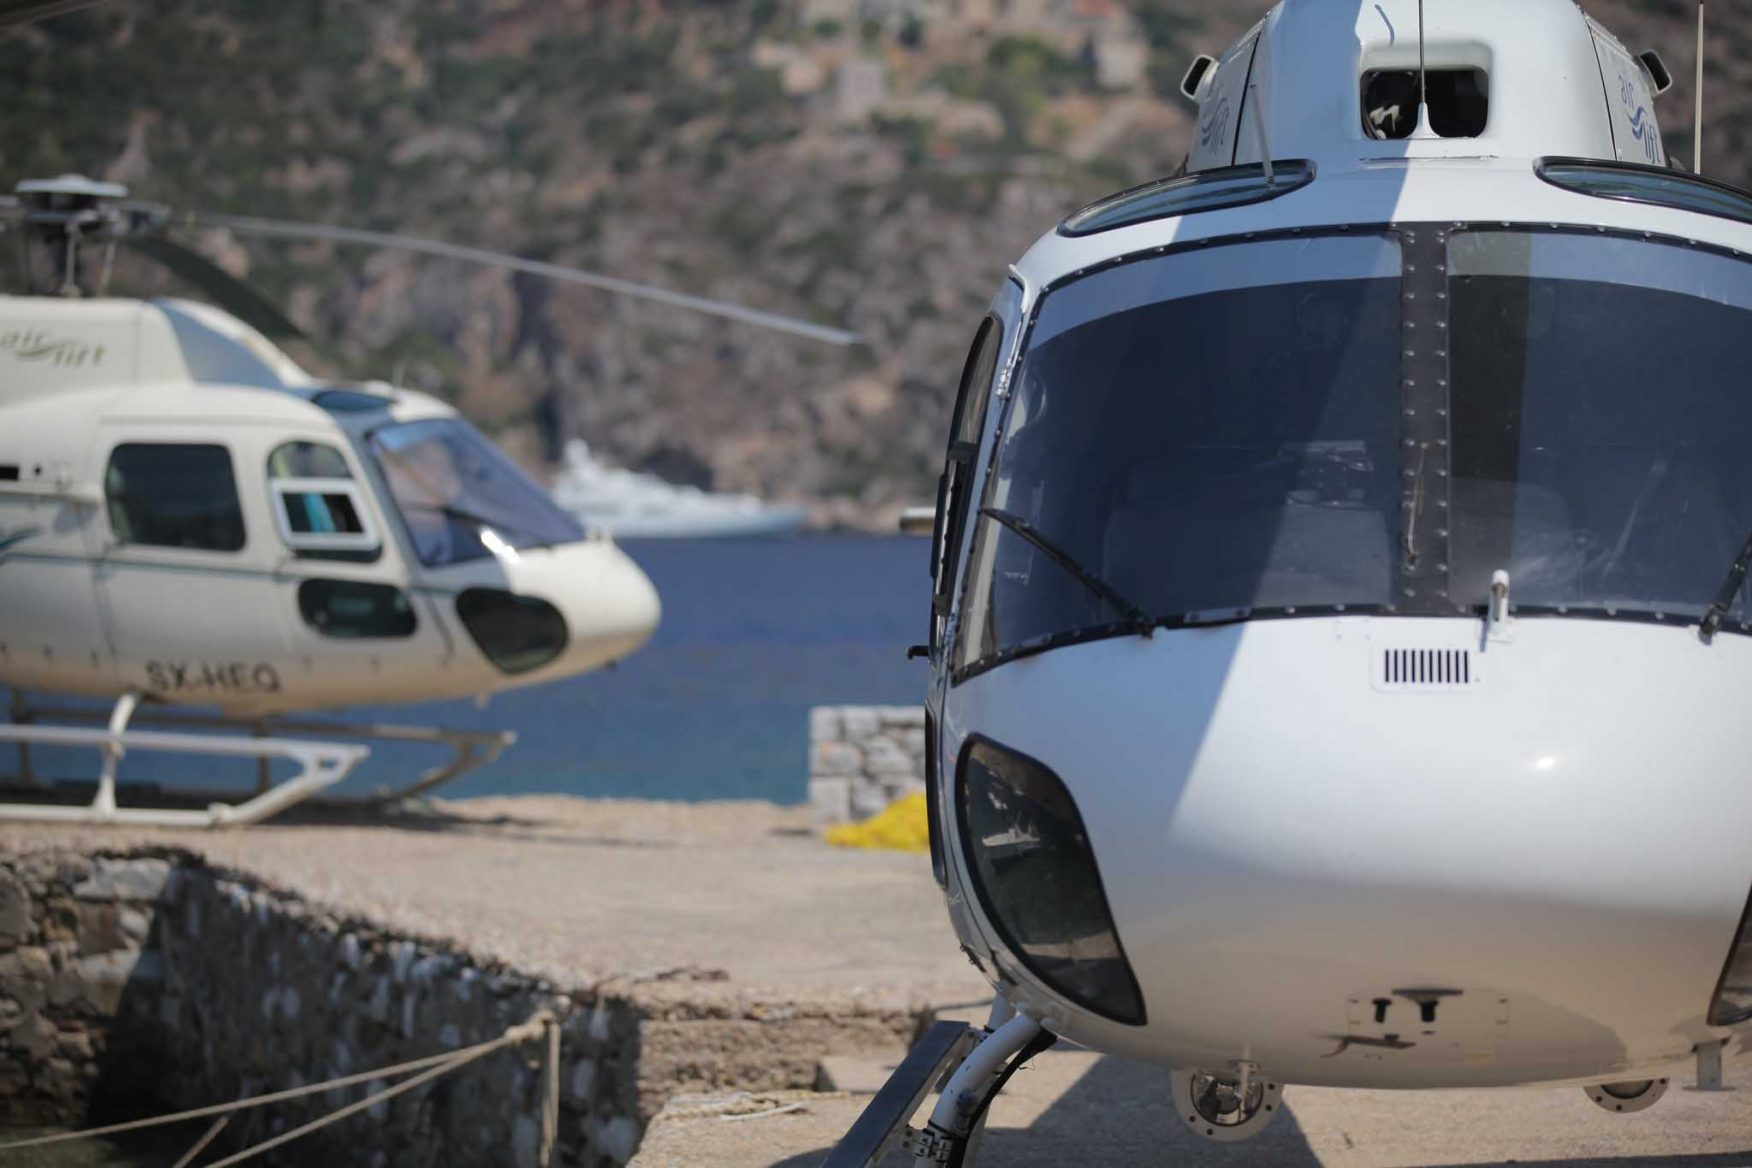 greek-mythological-cruising-helicopter-greece